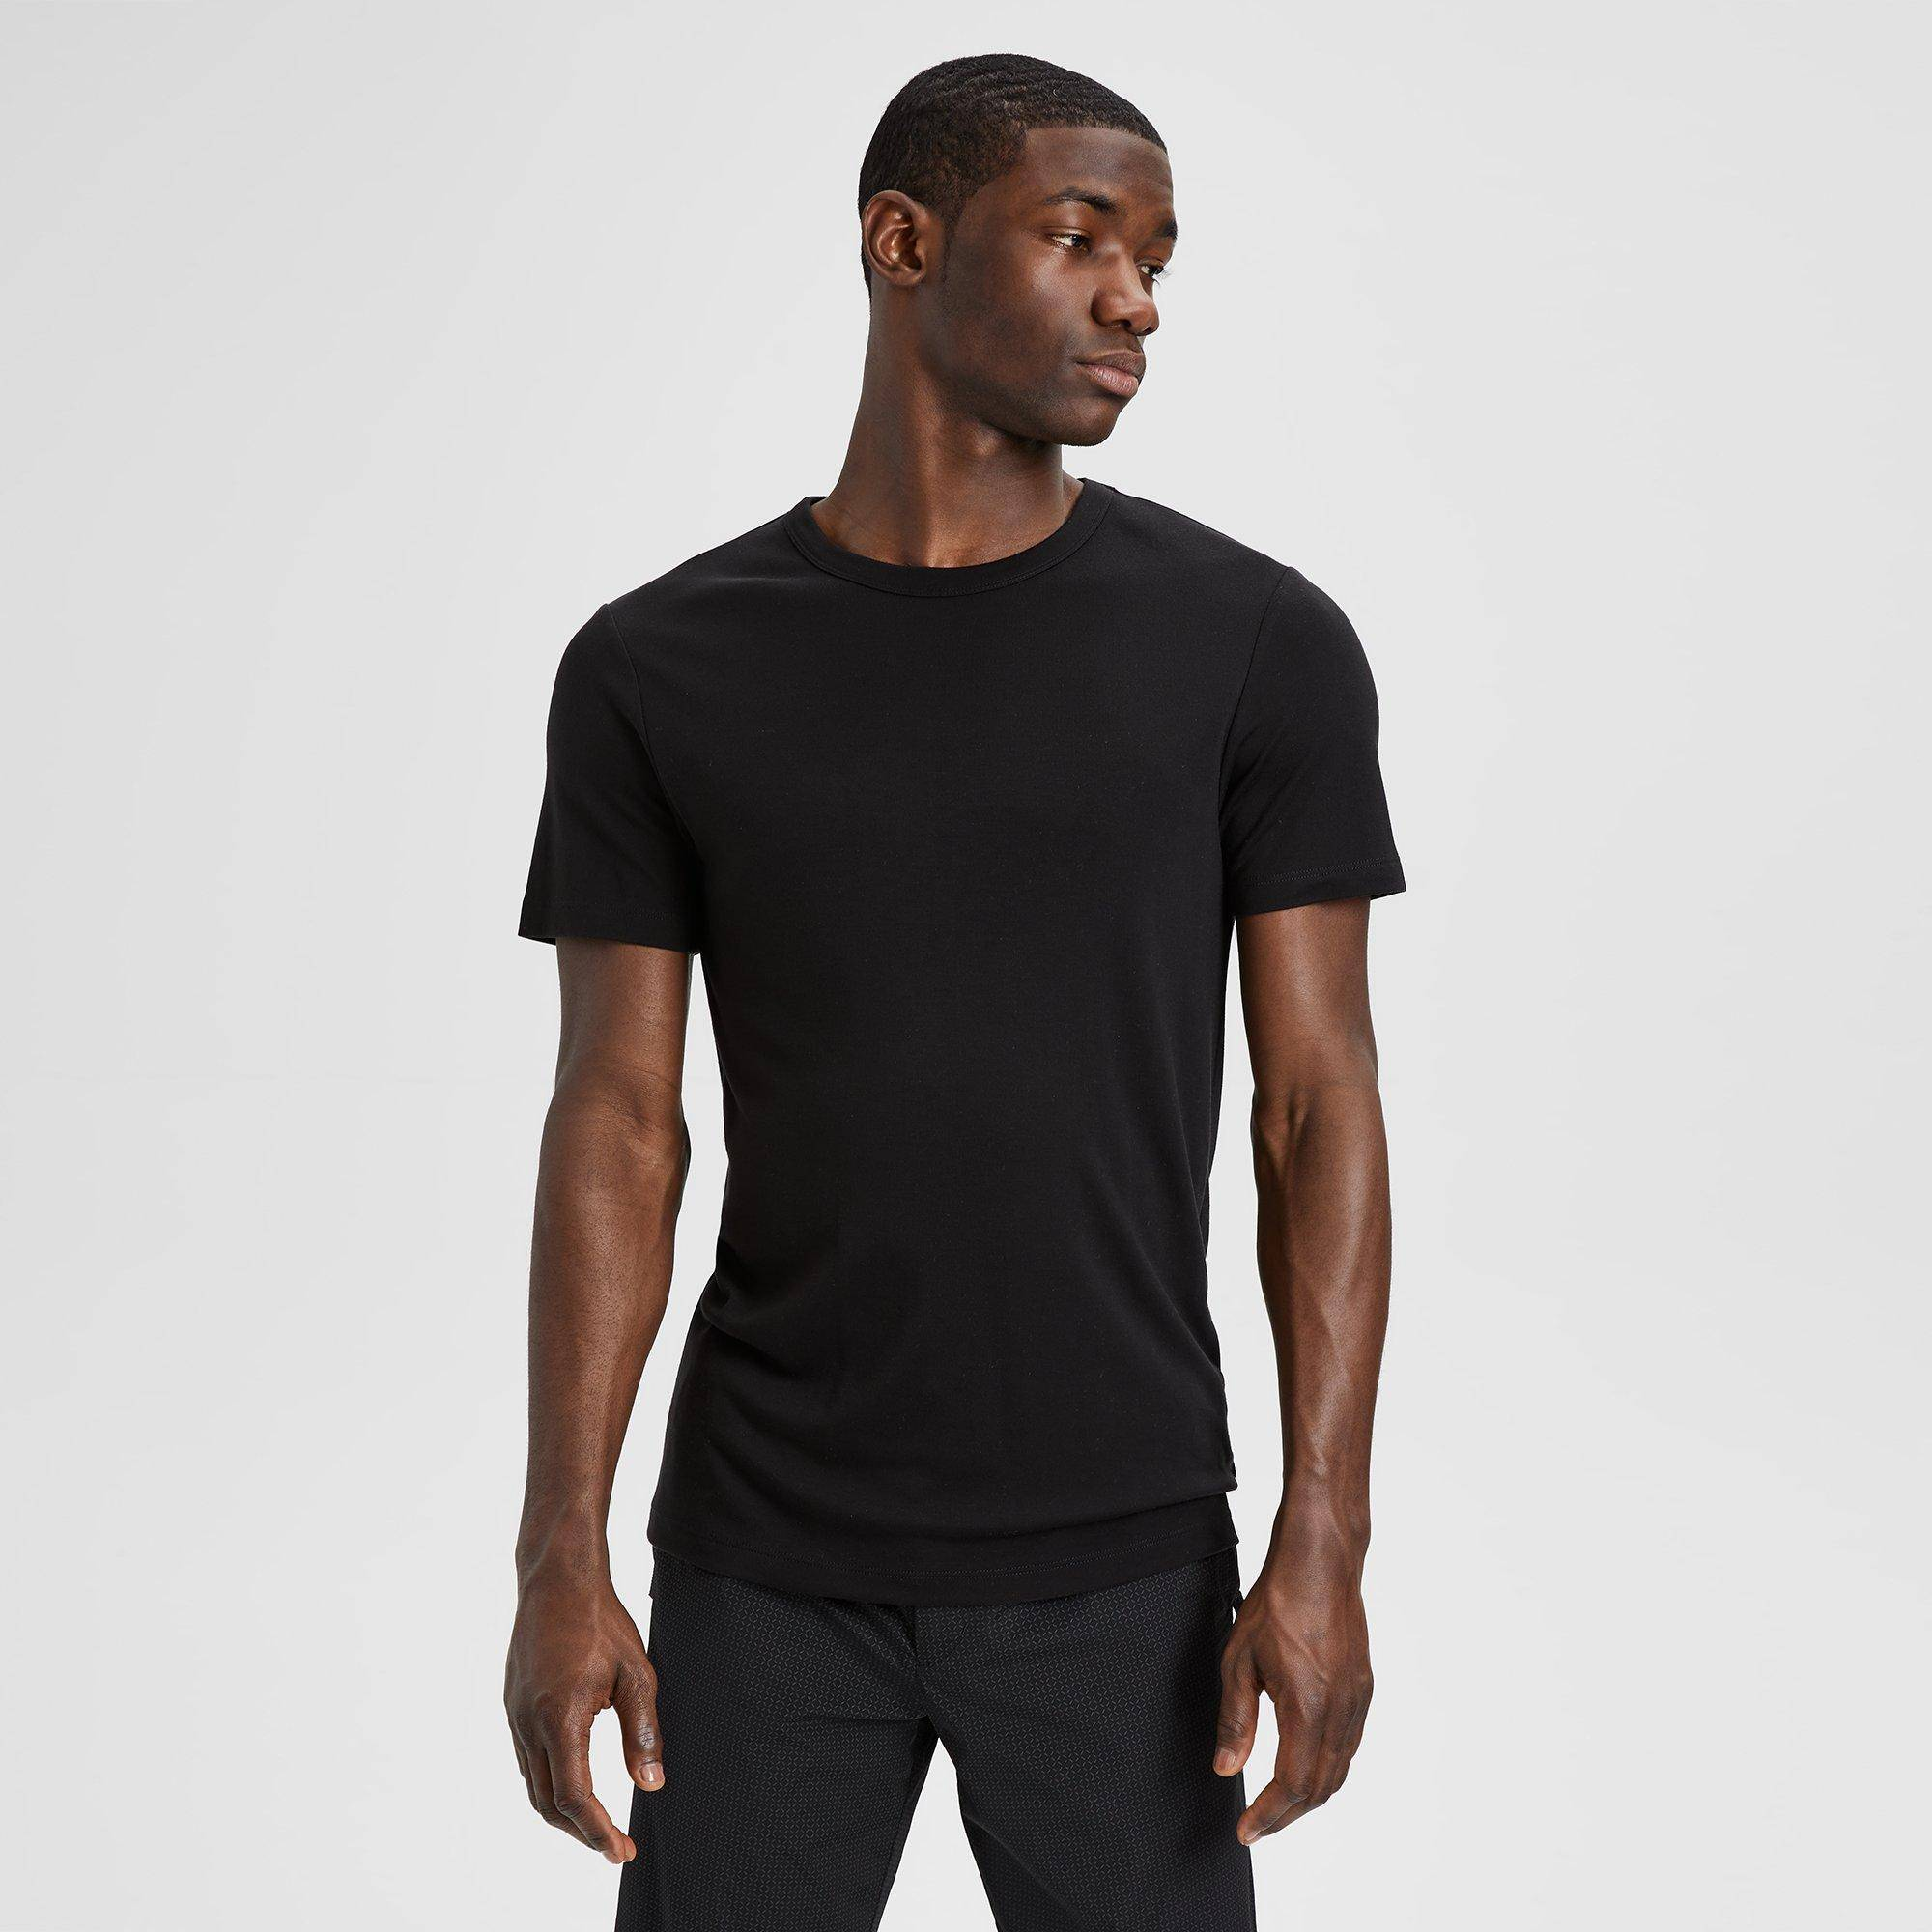 Theory Lyocell Essential Tee  - BLACK - male - Size: 2X-Large